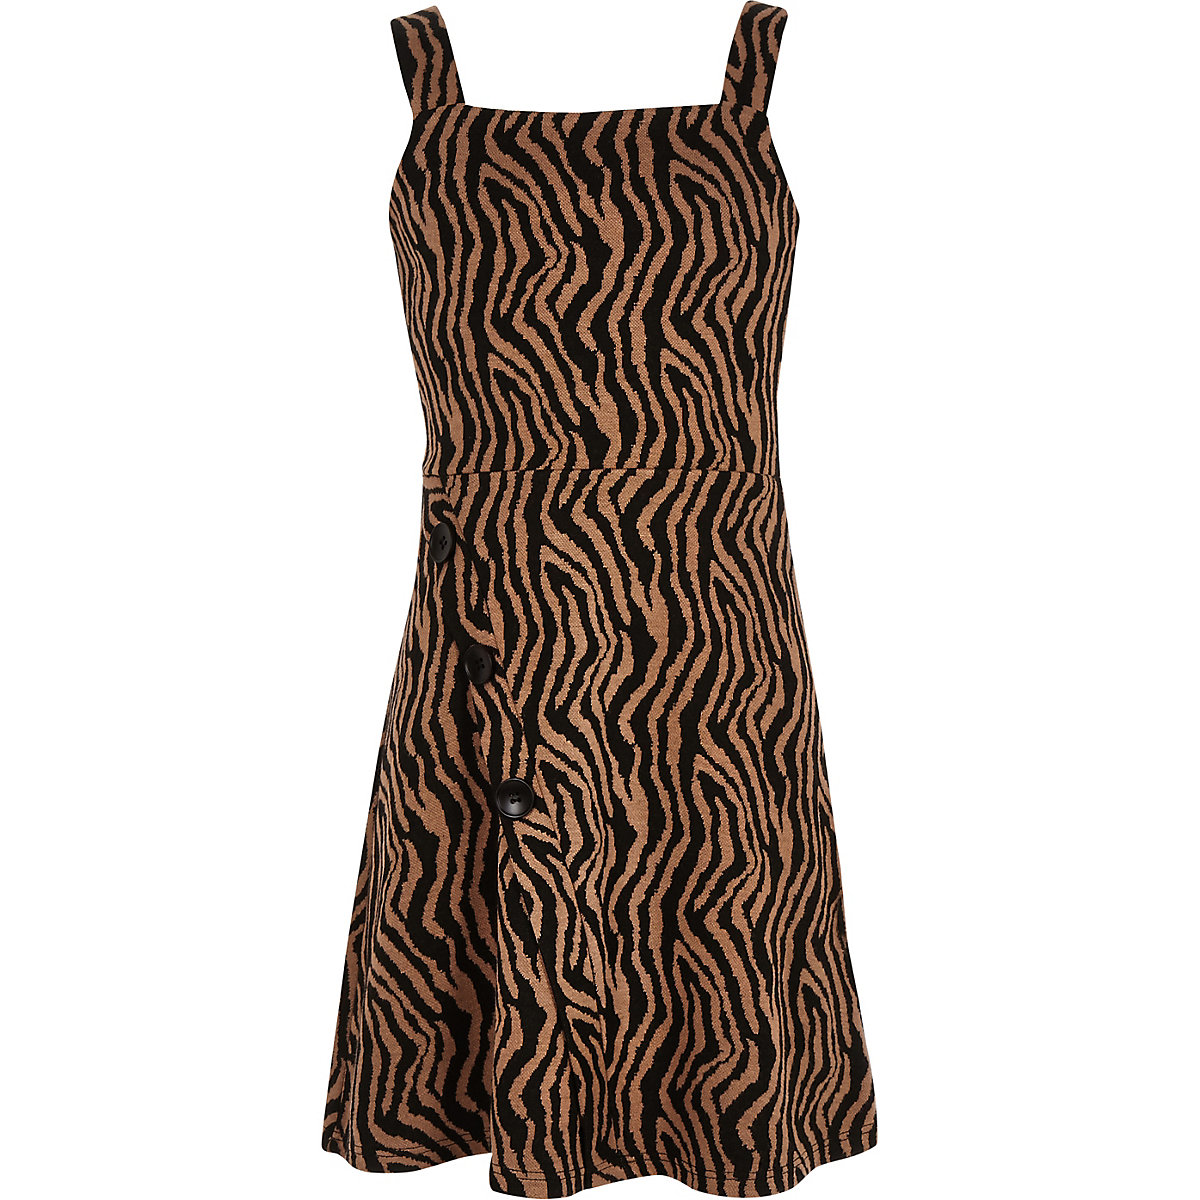 Black zebra print pinafore dress